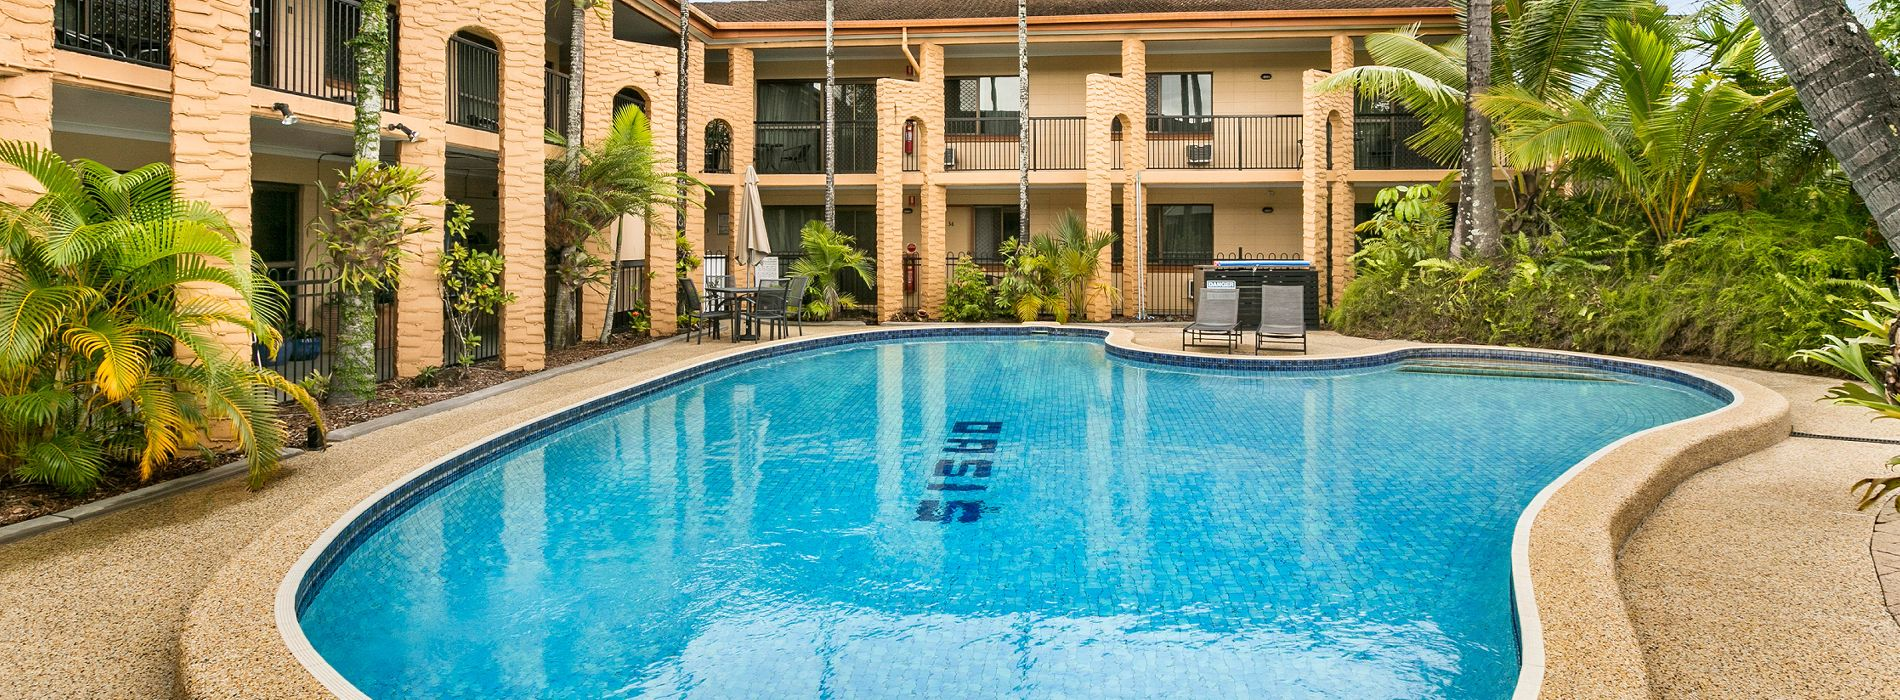 Cairns Holiday Apartments Oasis Inn Cairns Pool